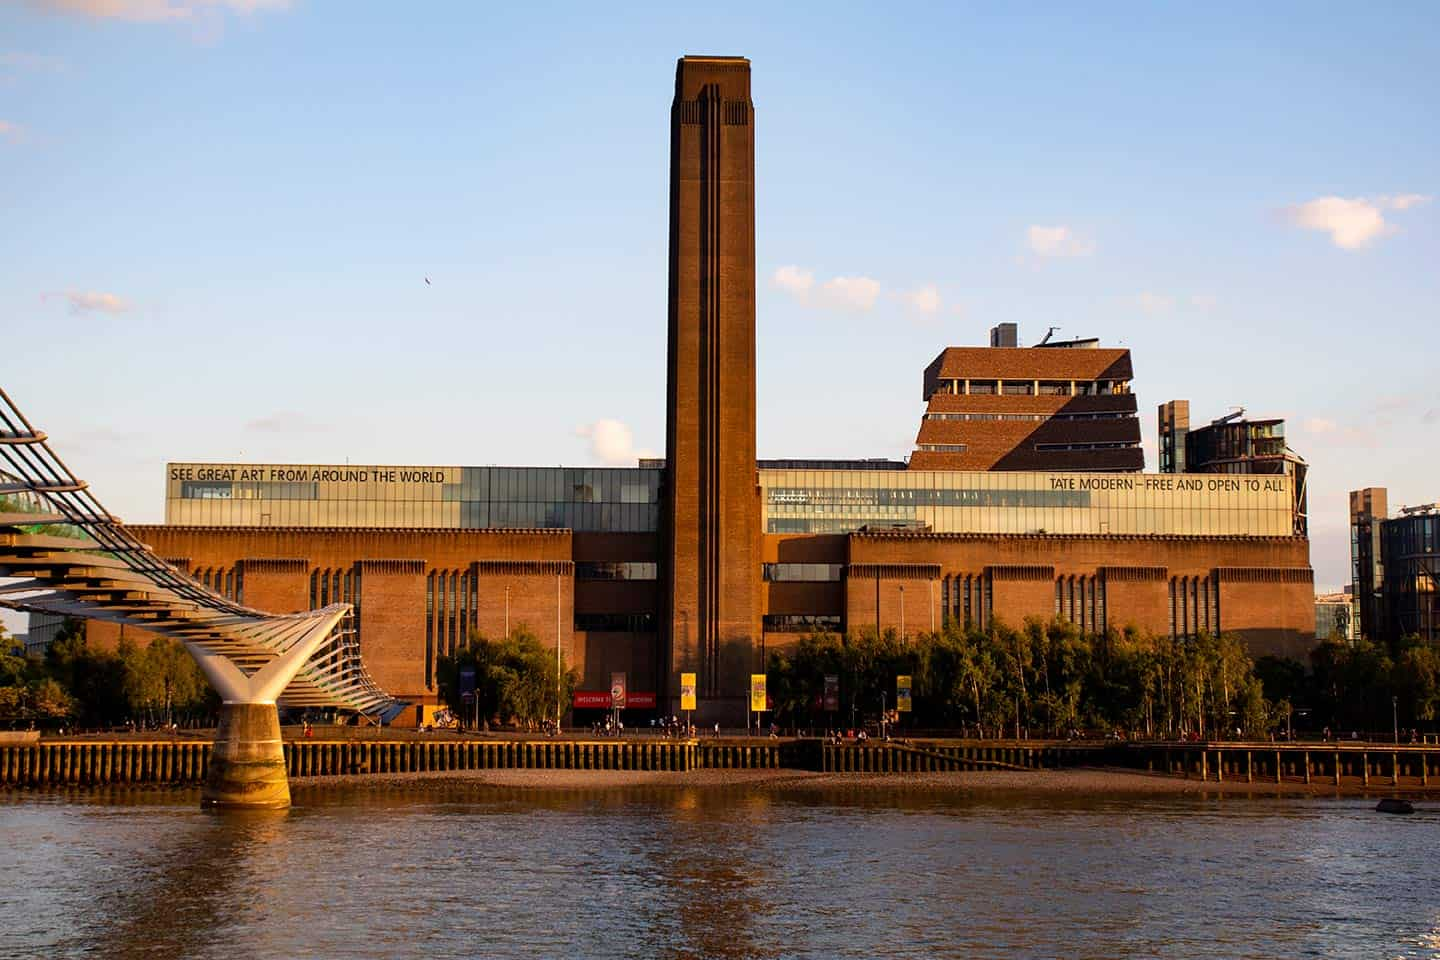 Image of the Tate Modern Art Gallery in London